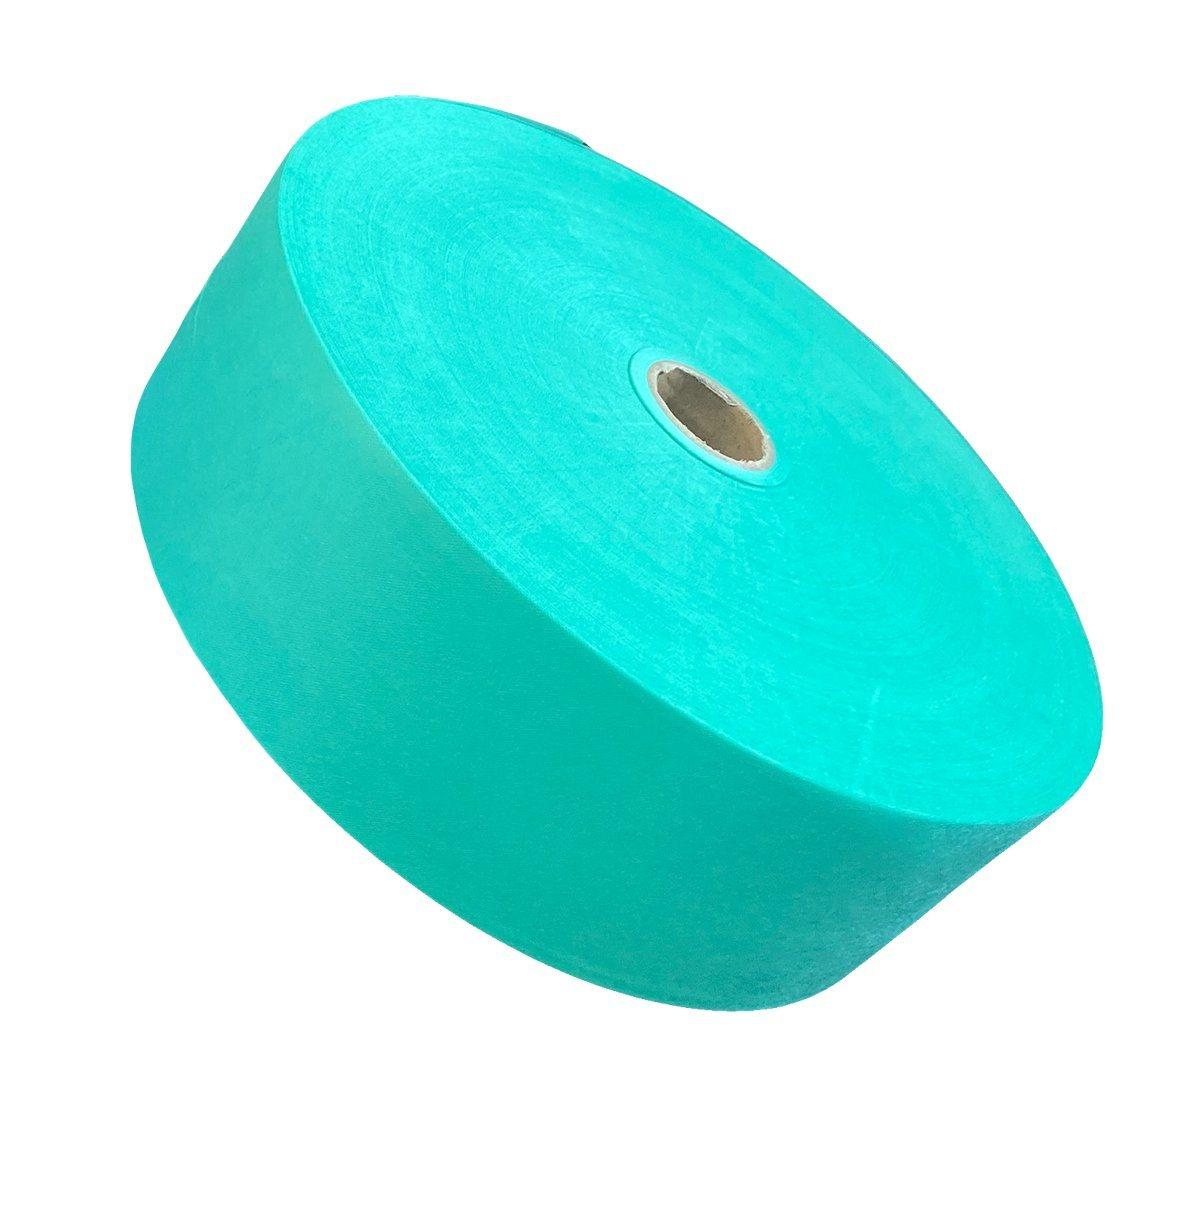 100%PP Spunbond Nonwoven Fabric Non Woven Fabric for Mask